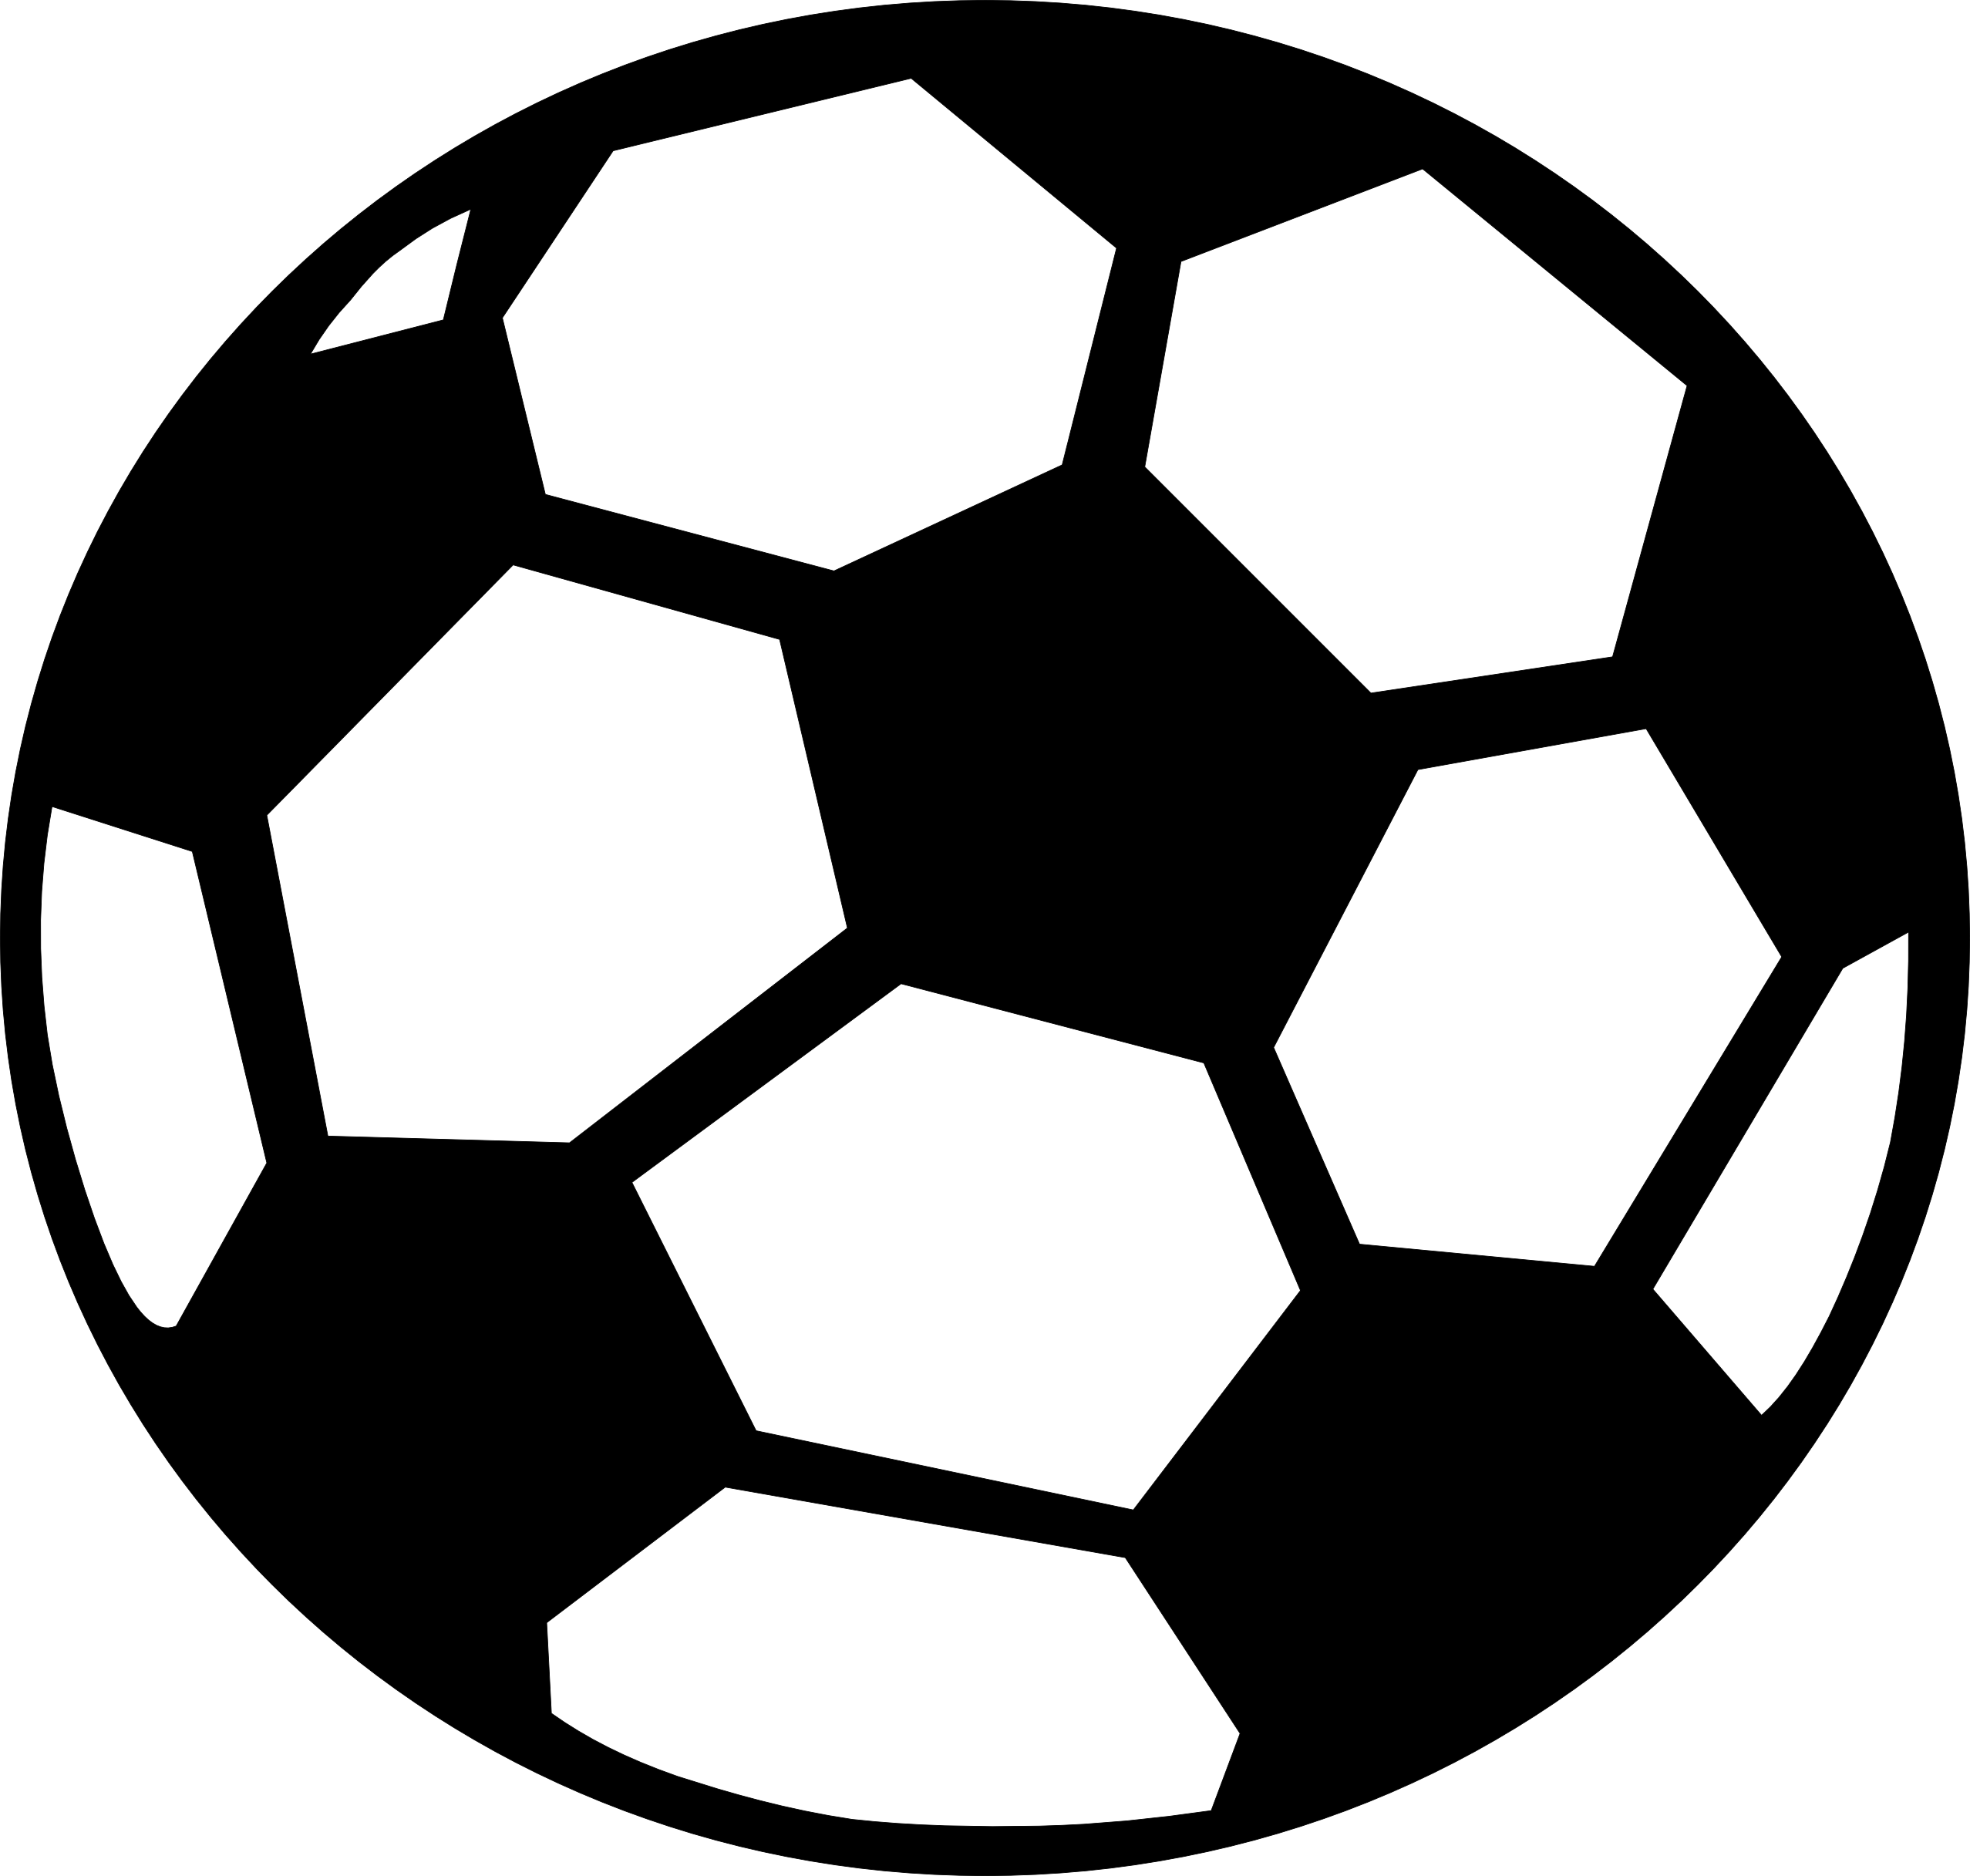 best images of. Color soccer ball clipart